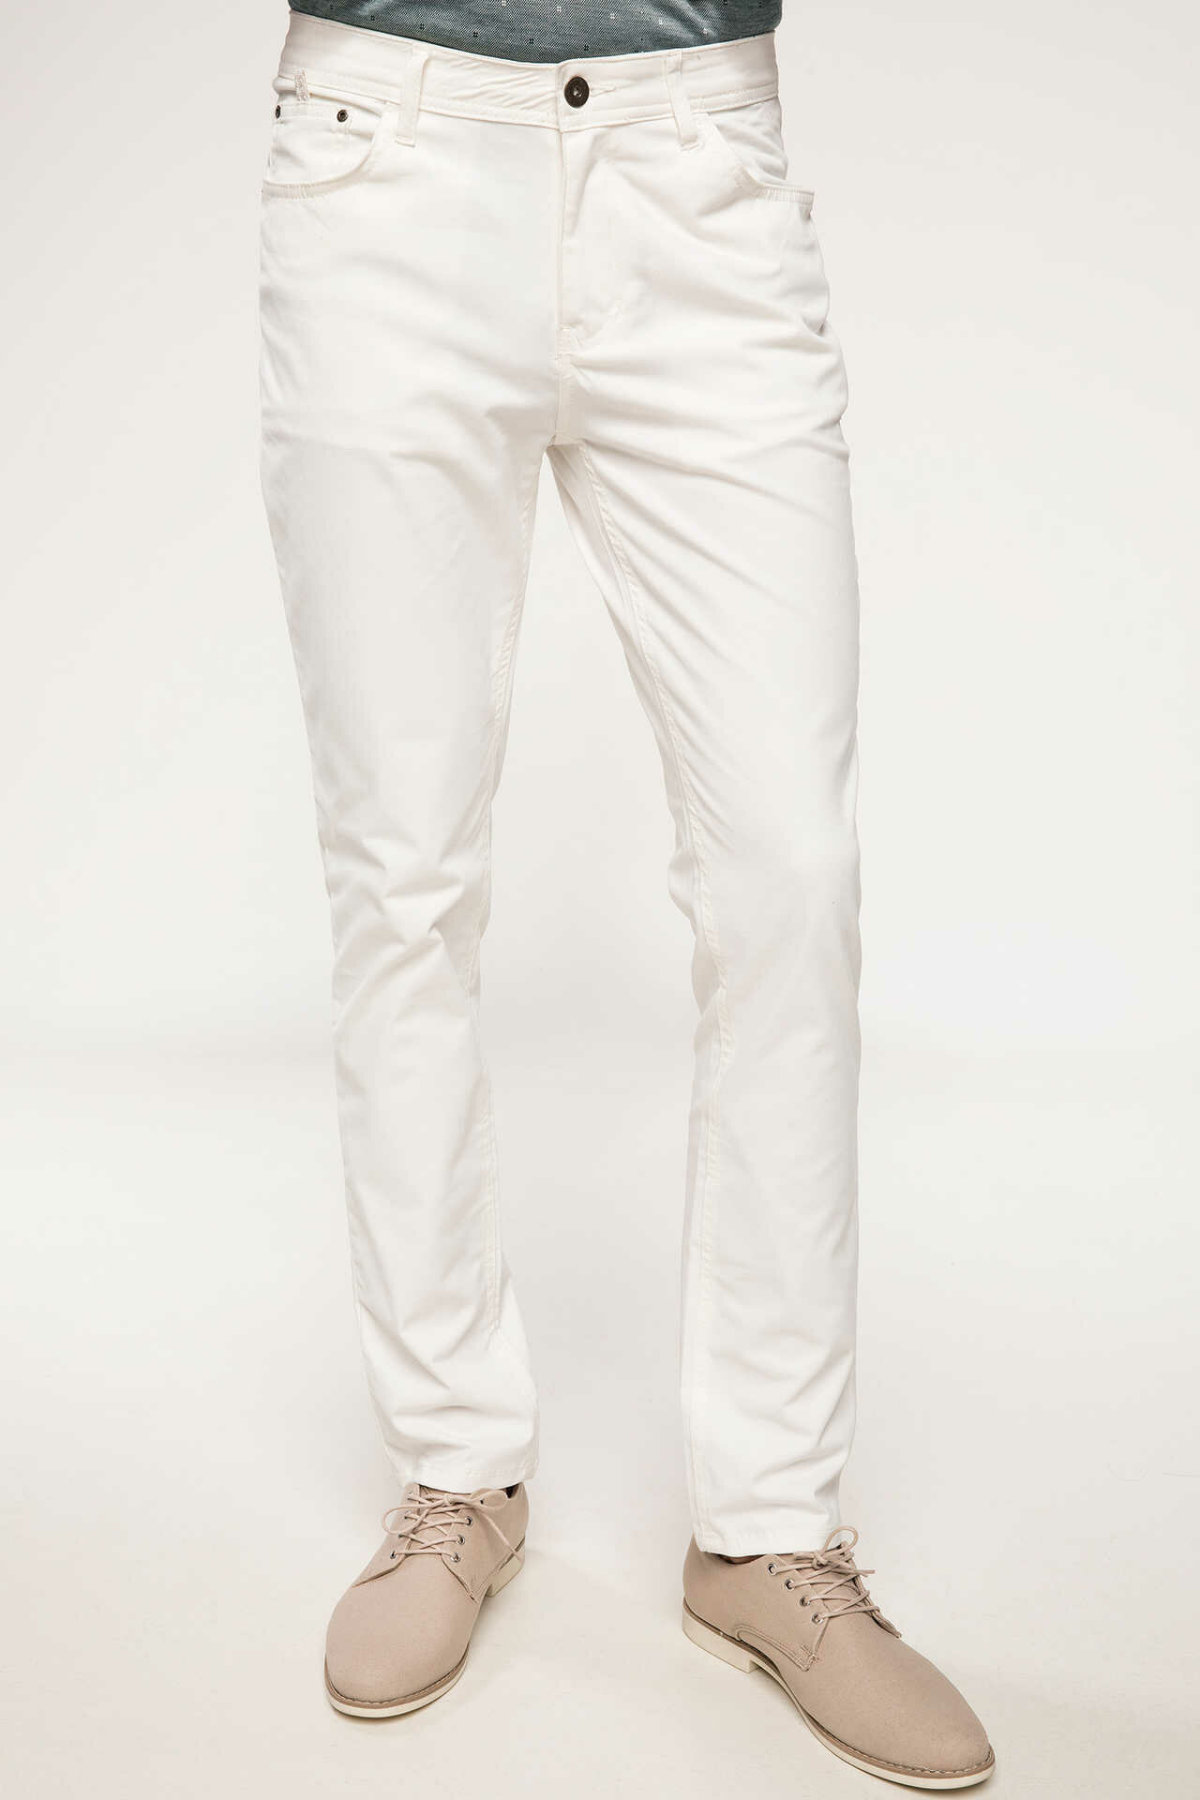 DeFacto New Man Trousers Business Straight Long Pants Mid-waist White Men's Bottoms Pockets Long Pants New-I7725AZ18SM